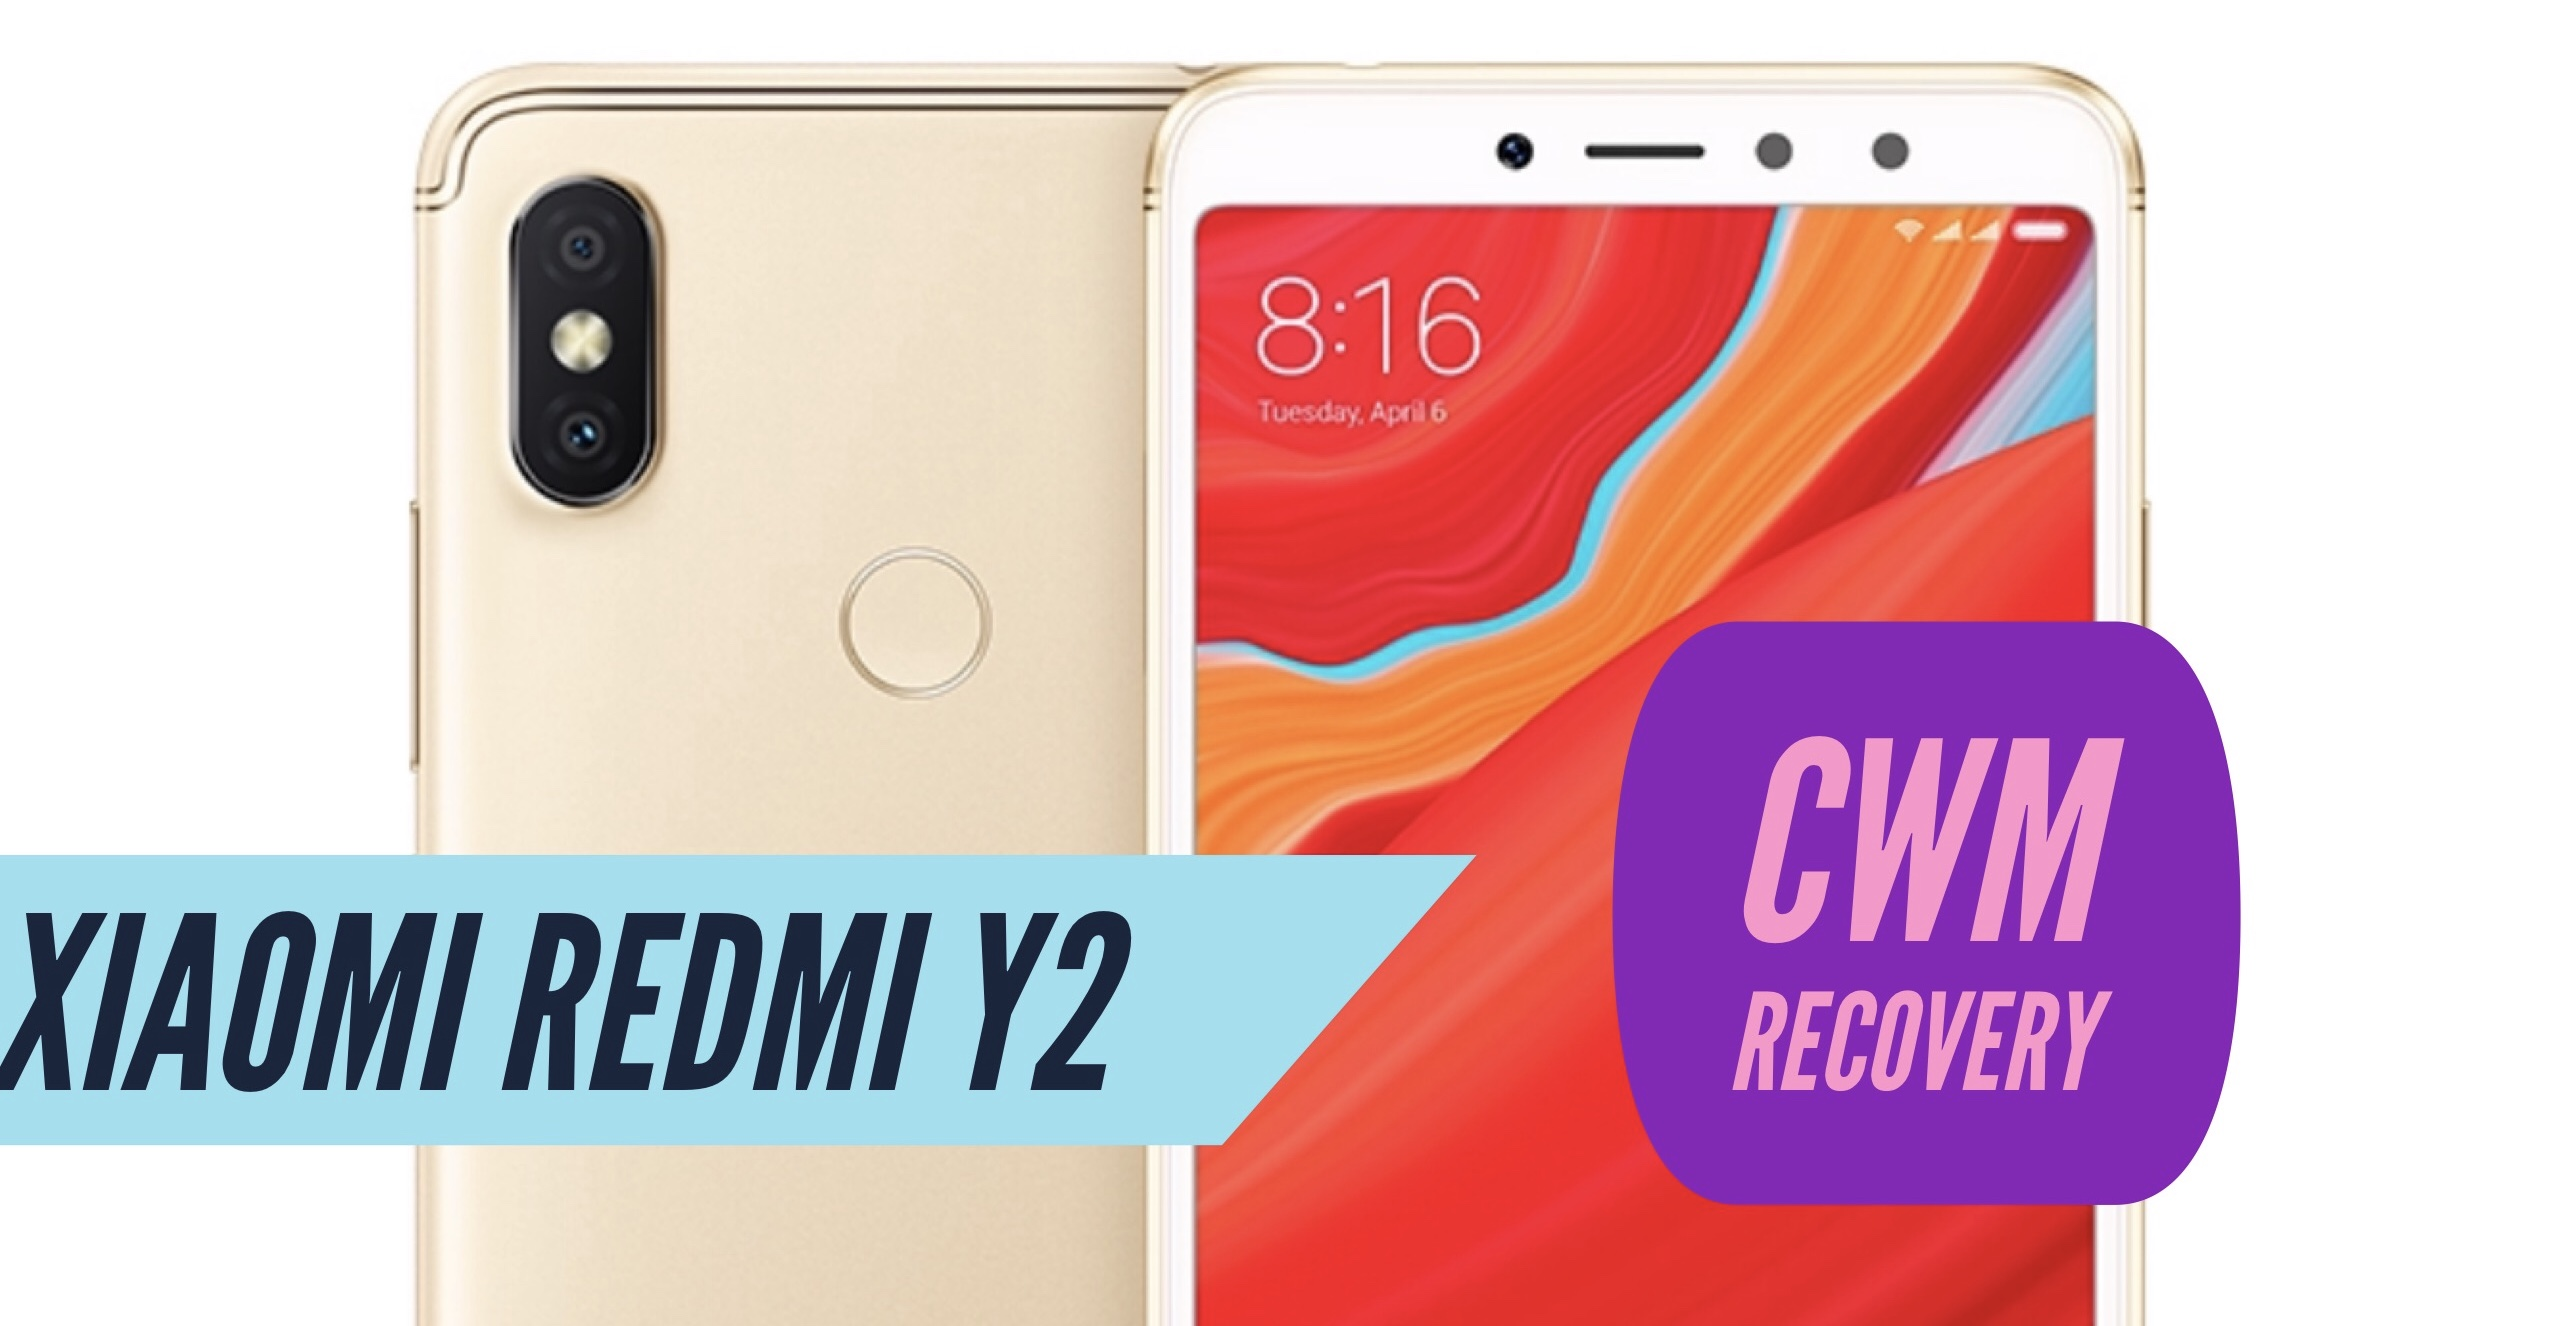 How to Install CWM Recovery on Xiaomi Redmi Y2? Full